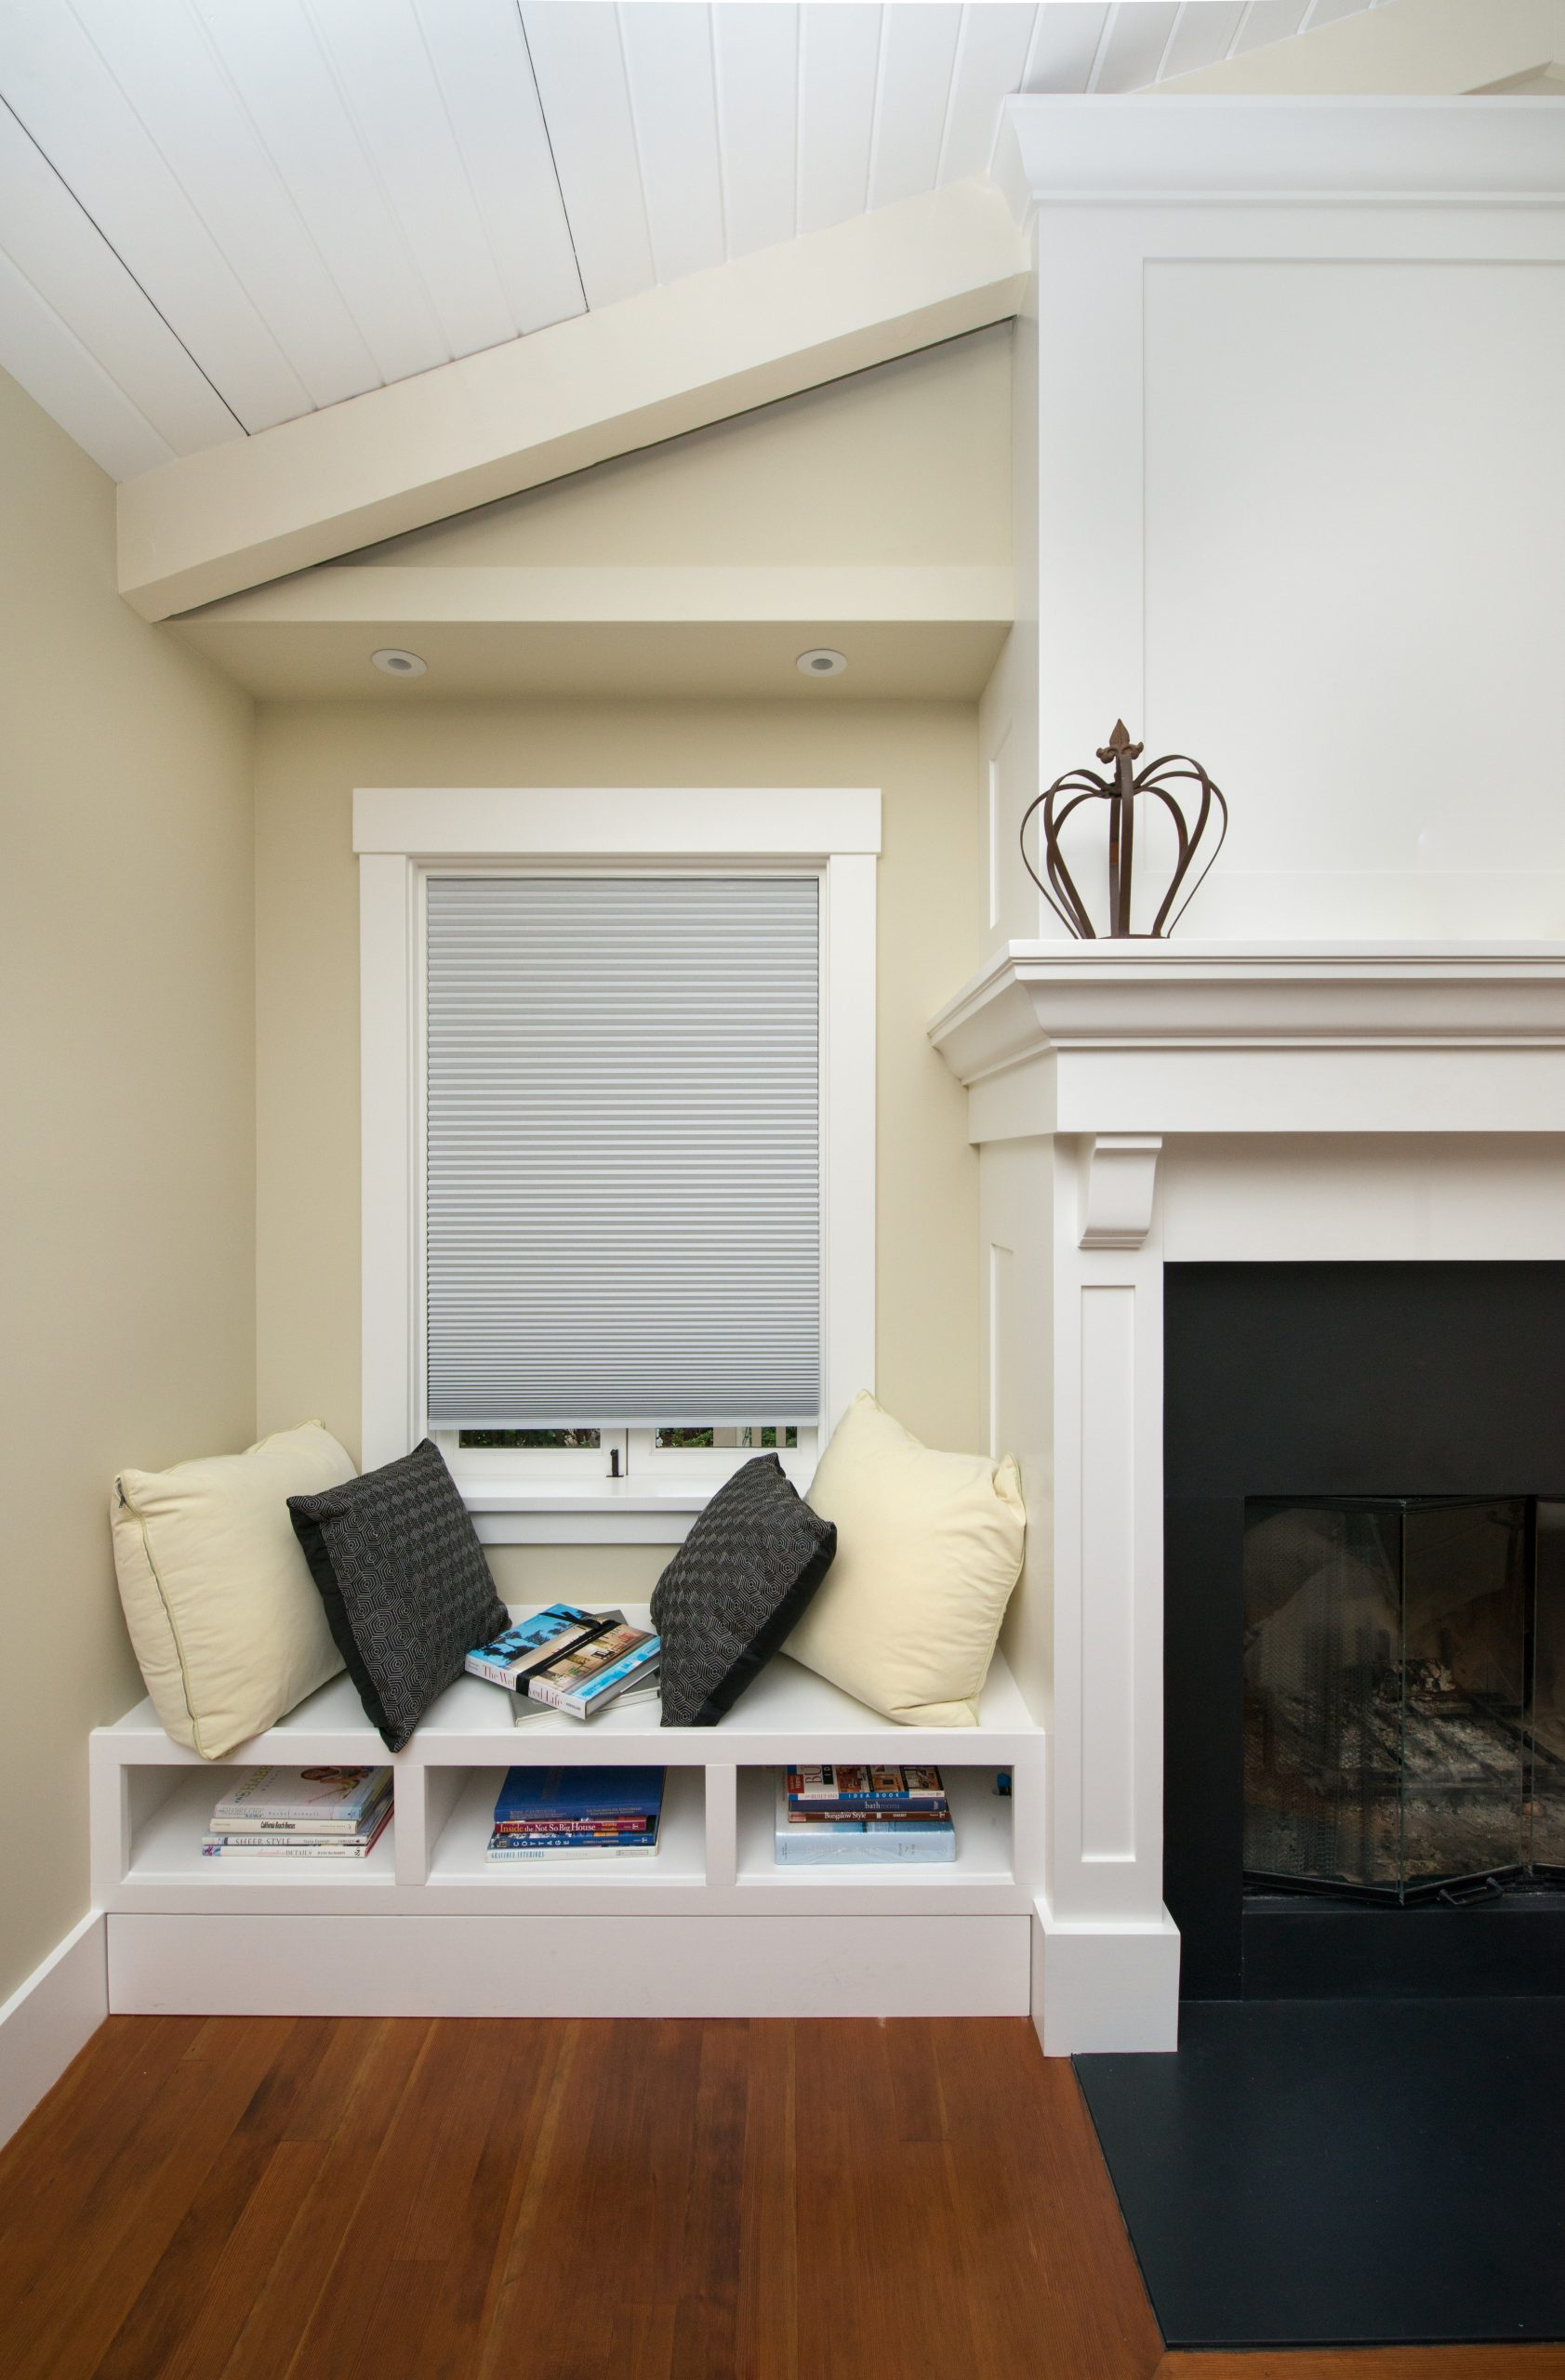 Easy Lift Select Shade sitting room